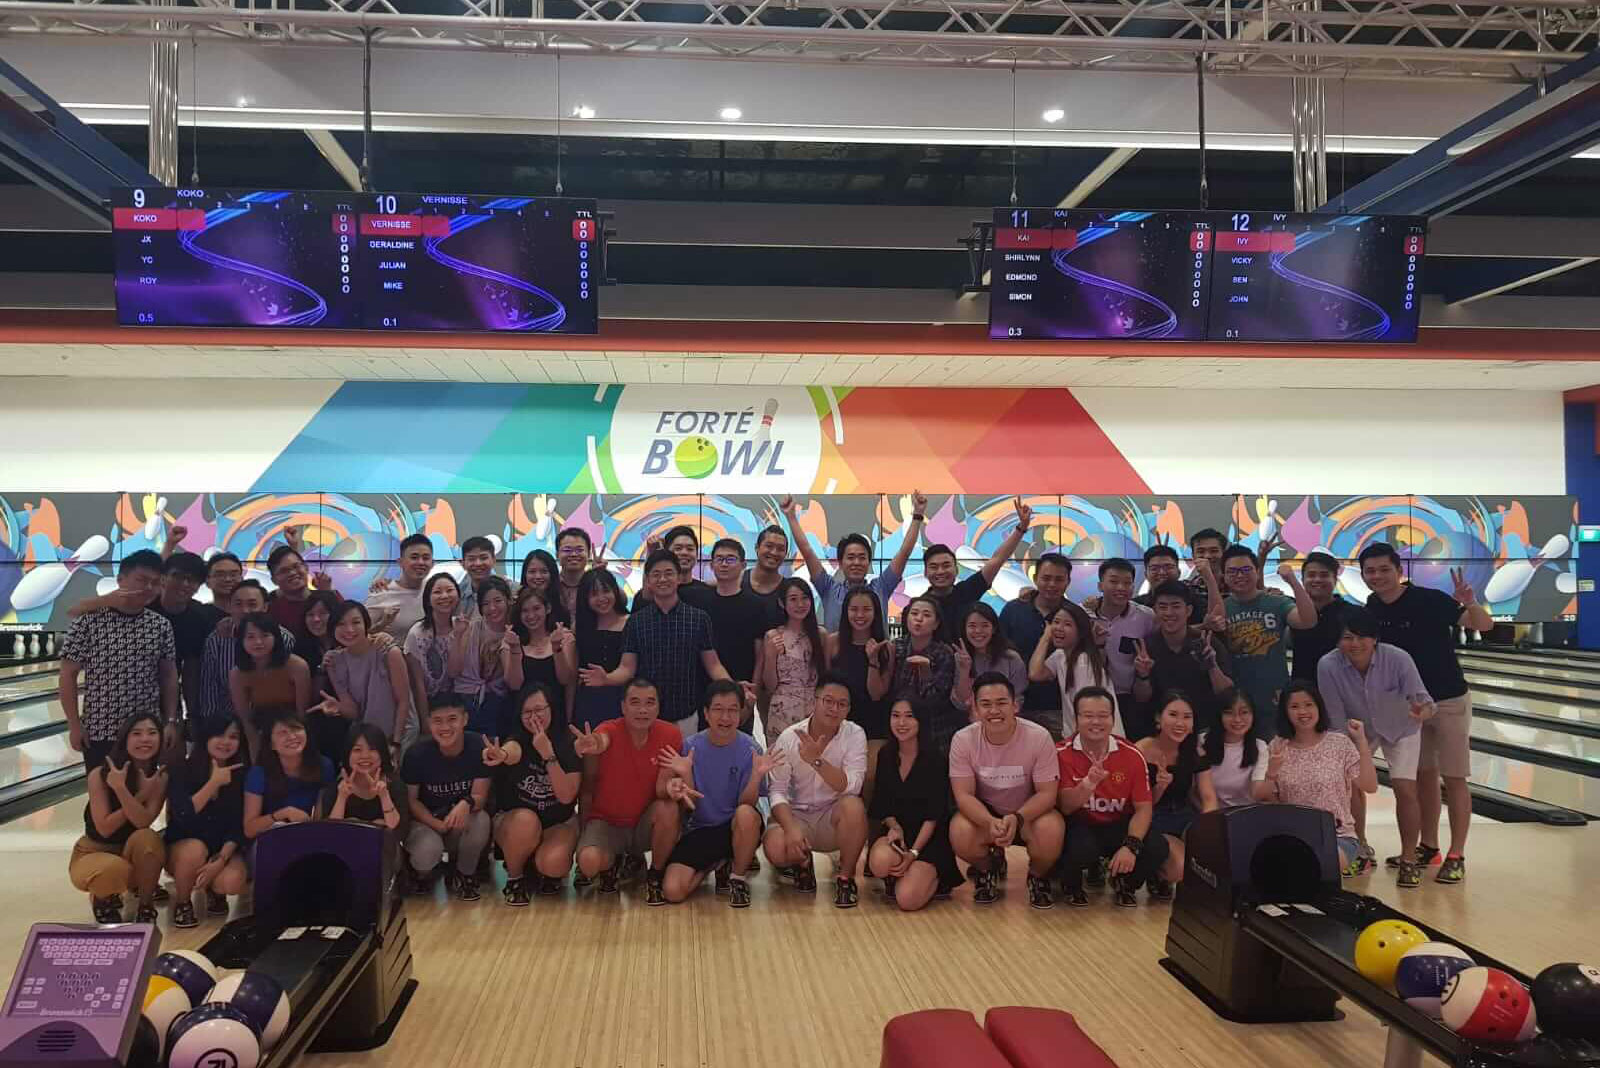 PULSEACTIV COMPANY BONDING BOWLING EVENT 2019